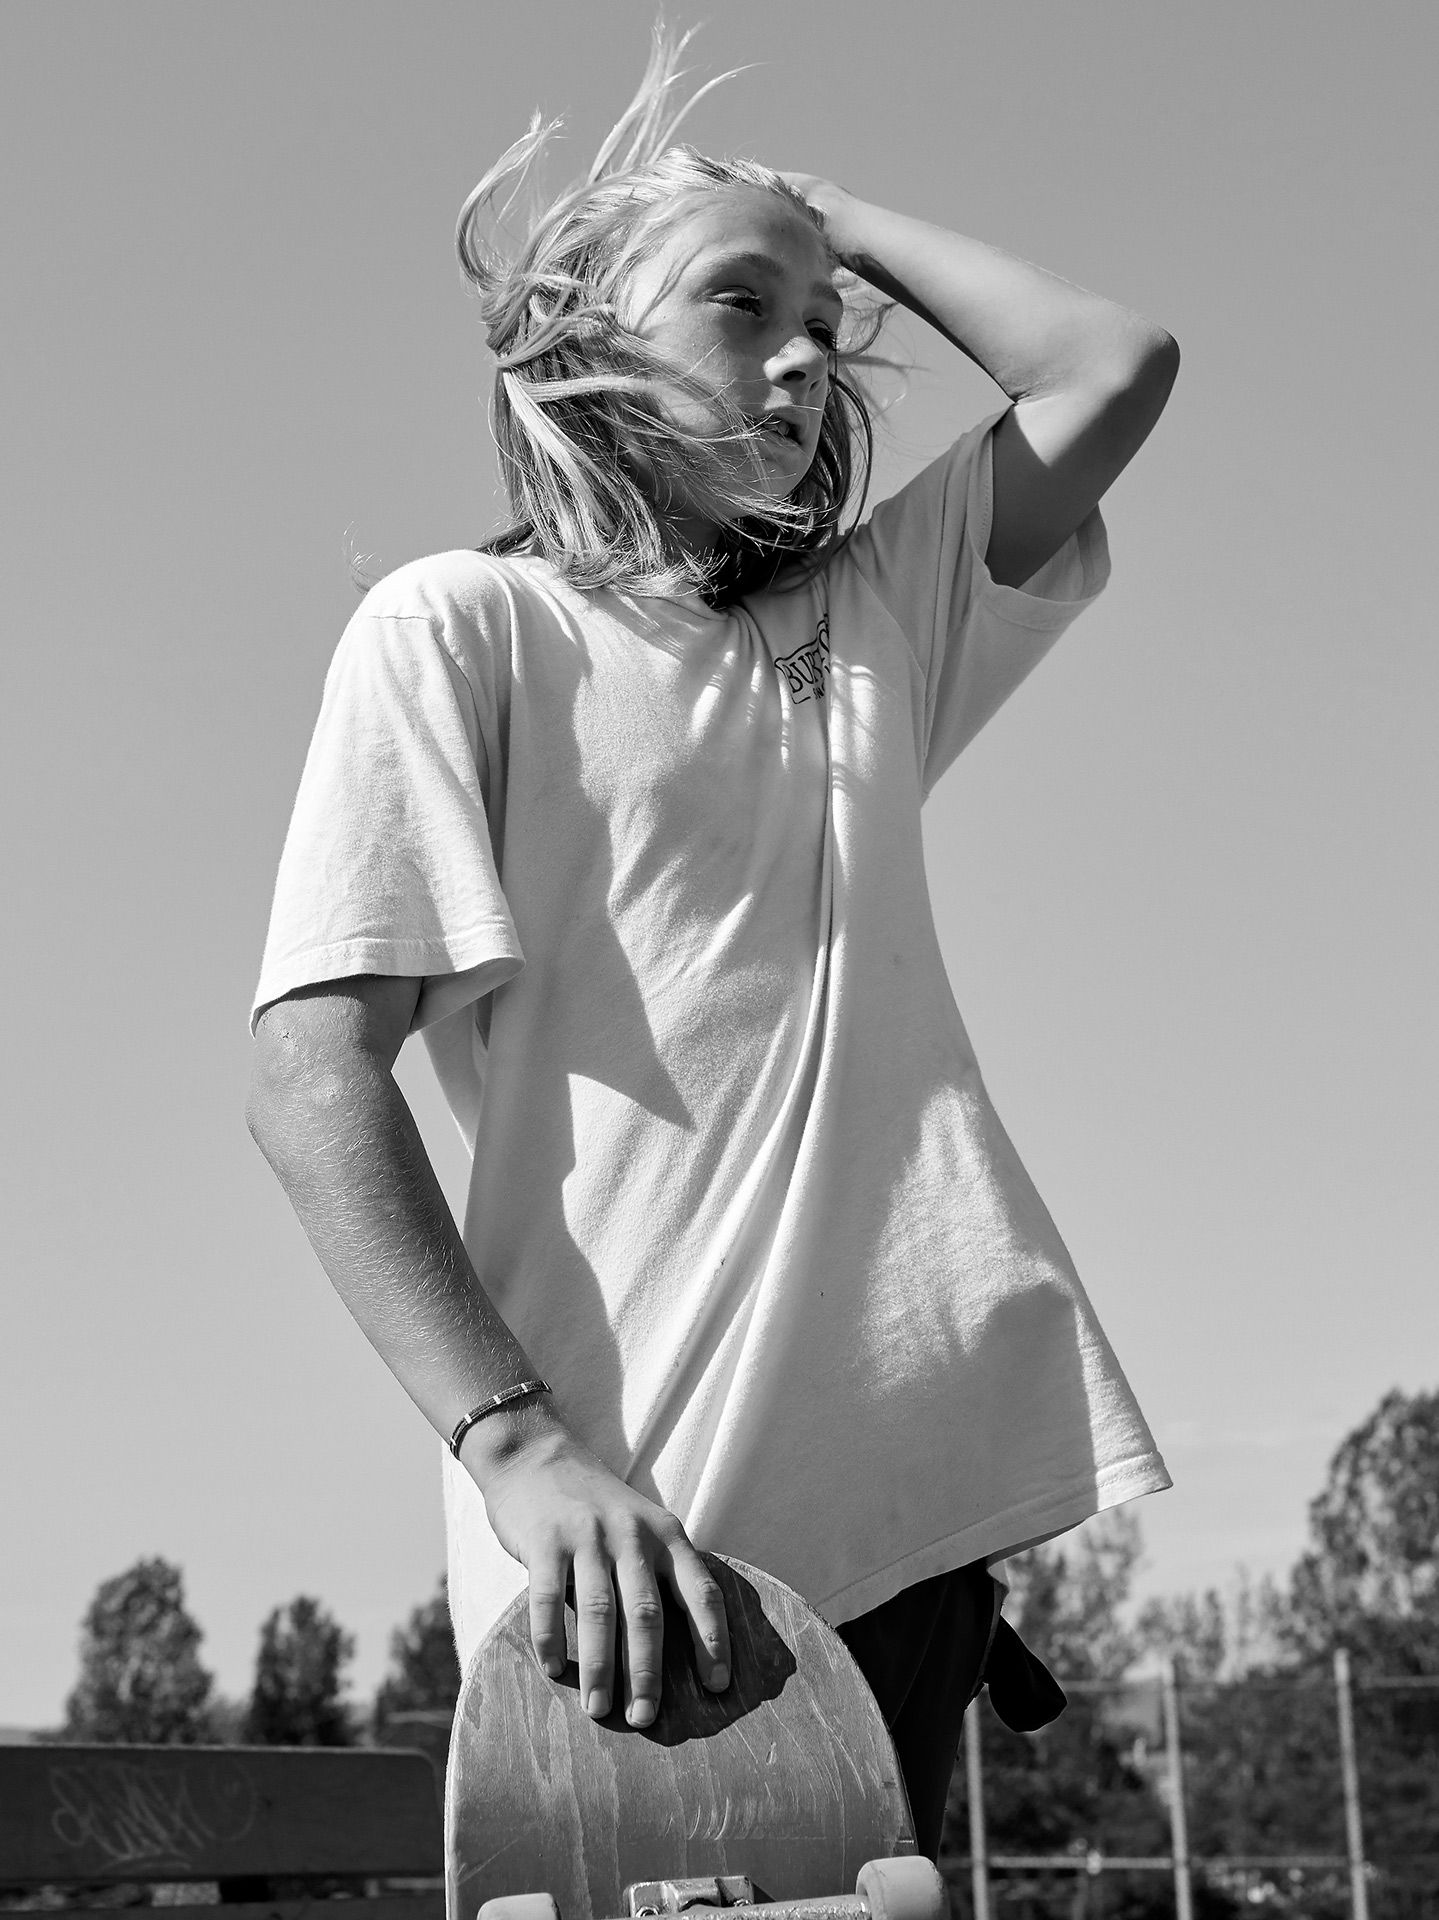 young boy in black and white holding skateboard hair in the wind wearing white shirt by Guillaume Simoneau